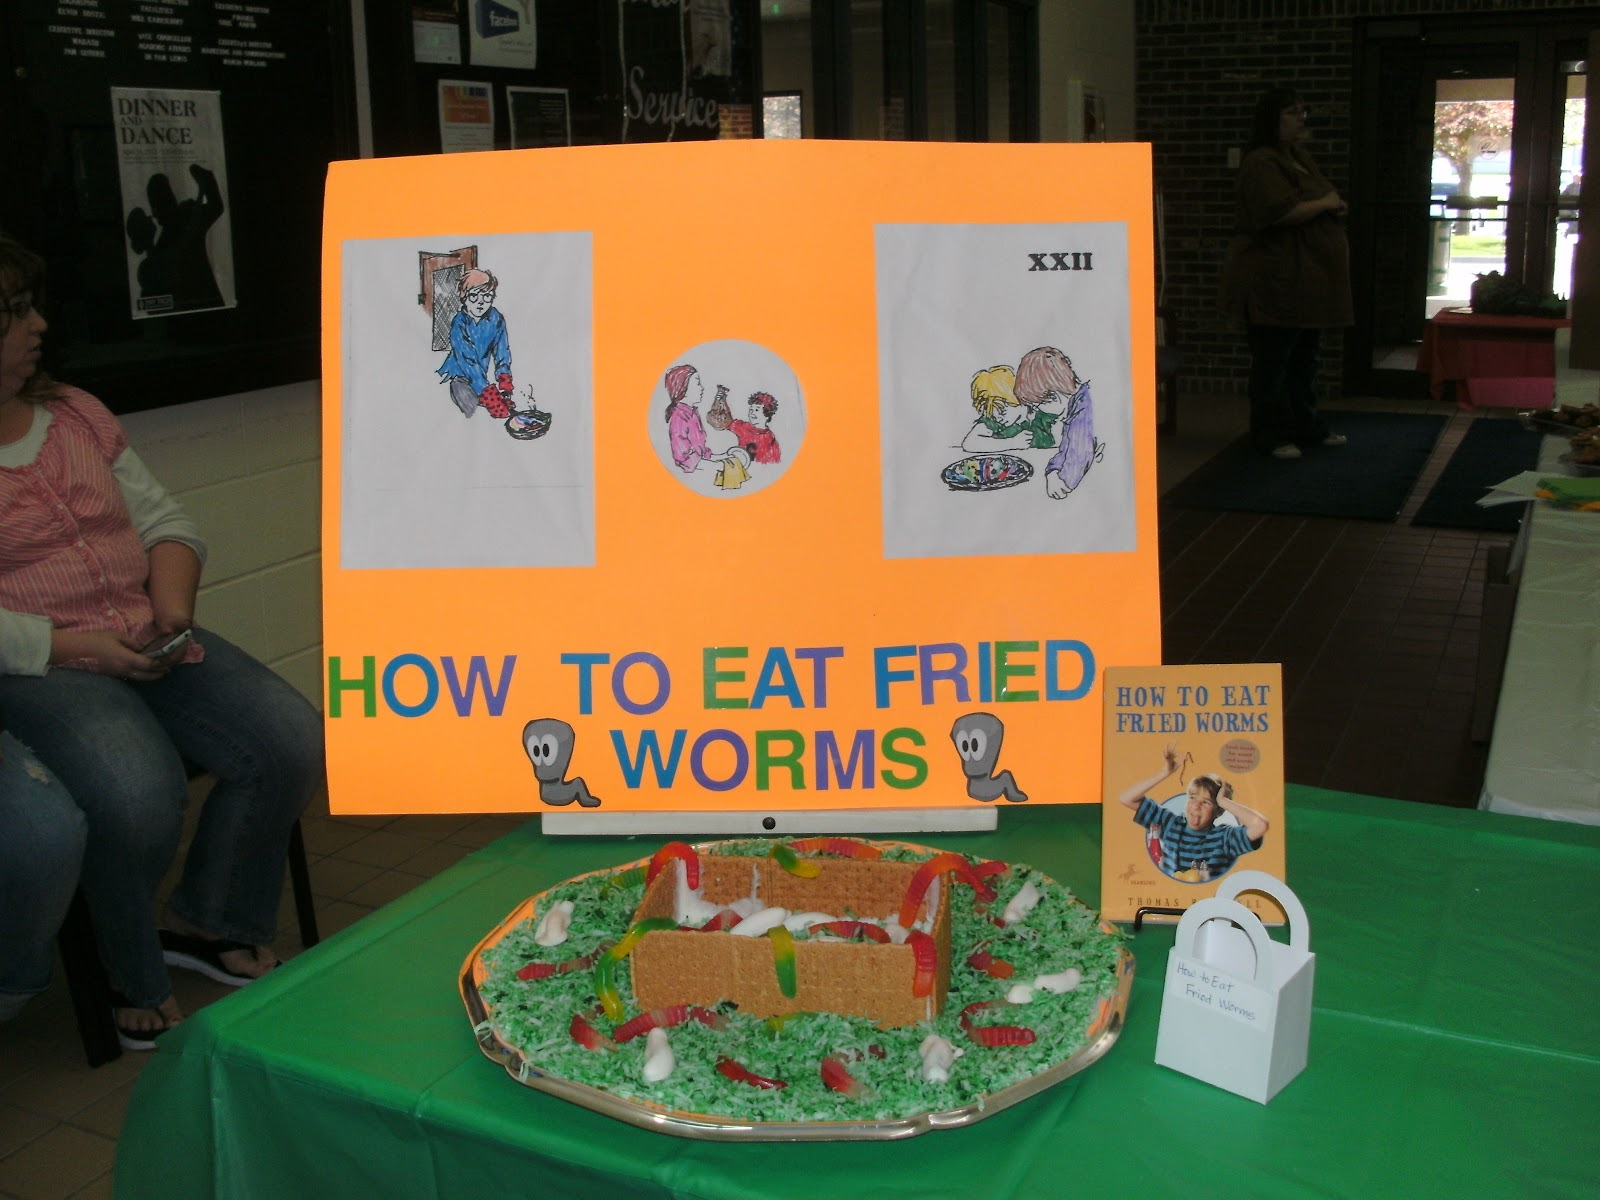 How To Eat Fried Worms Activities & Resources From Starts At Eight Edible  Book Festival 2012